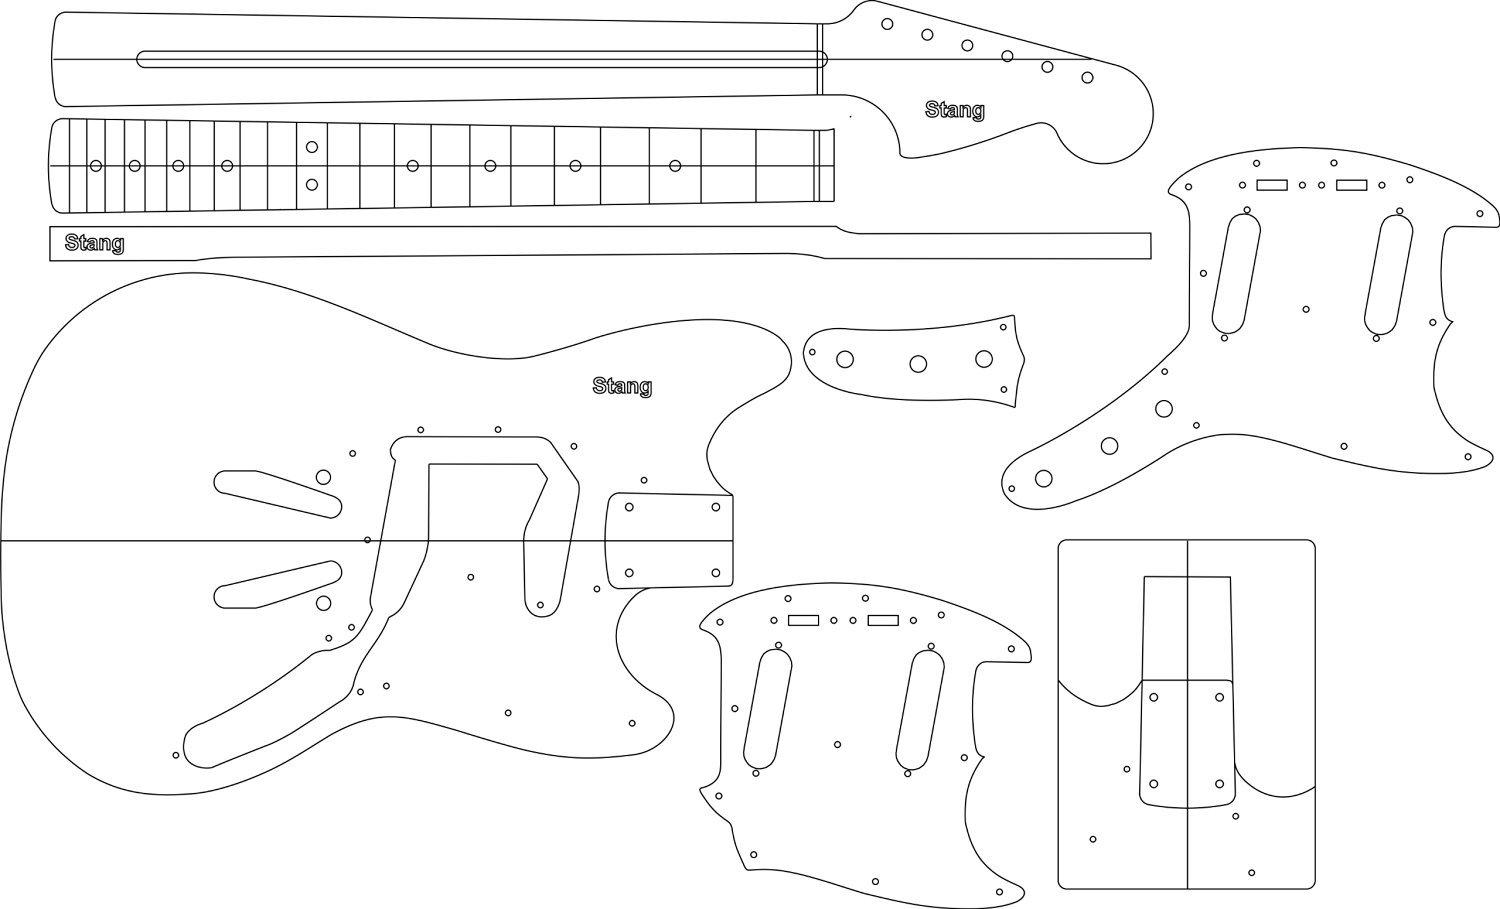 Buy Electric Guitar Layout Template Stang In Cheap Price On